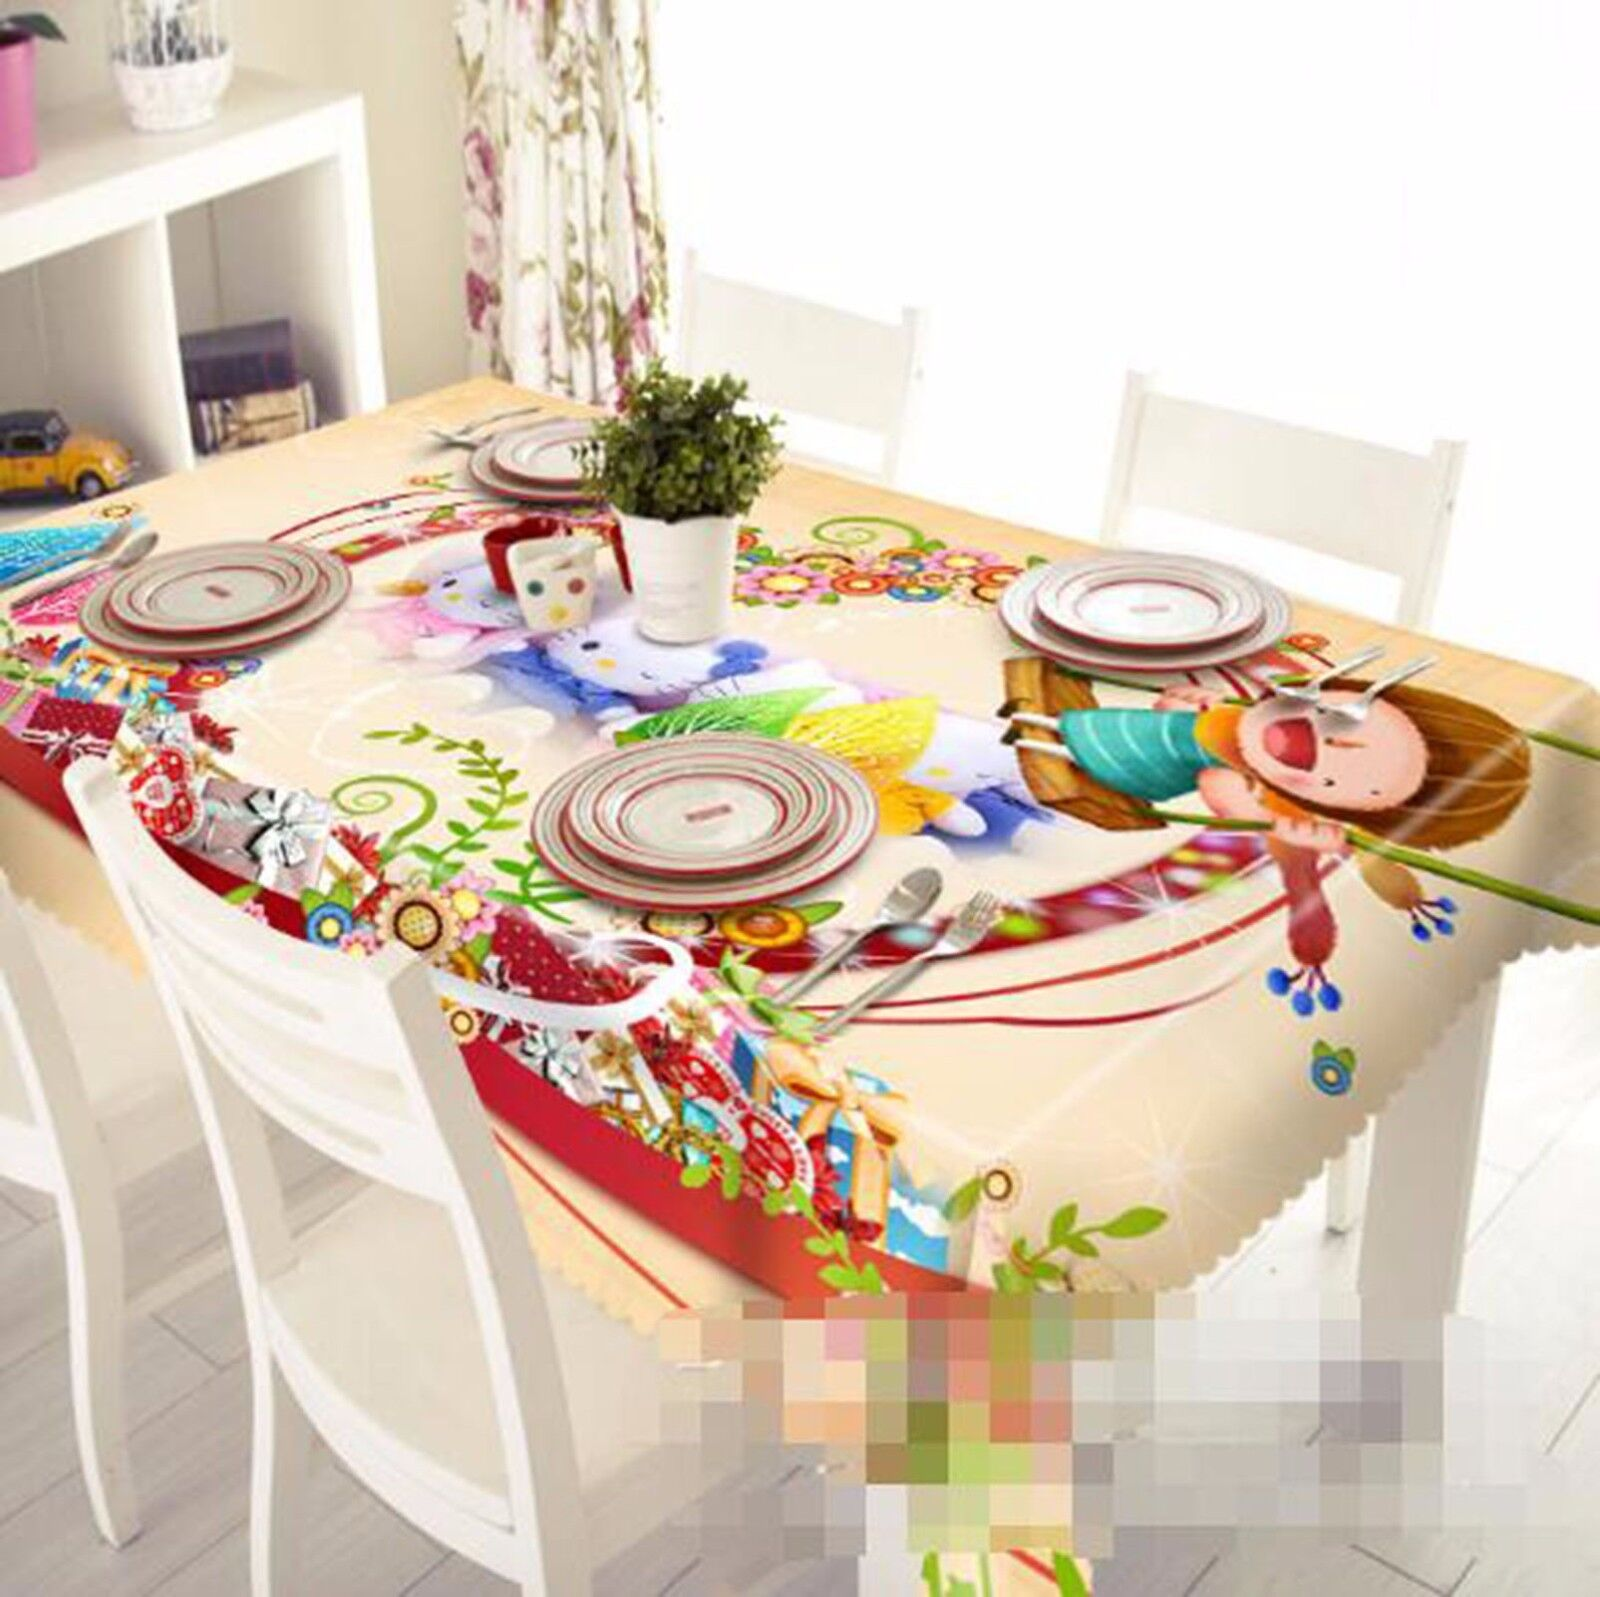 3D Cartoon 67 Tablecloth Table Cover Cloth Birthday Party AJ WALLPAPER UK Lemon